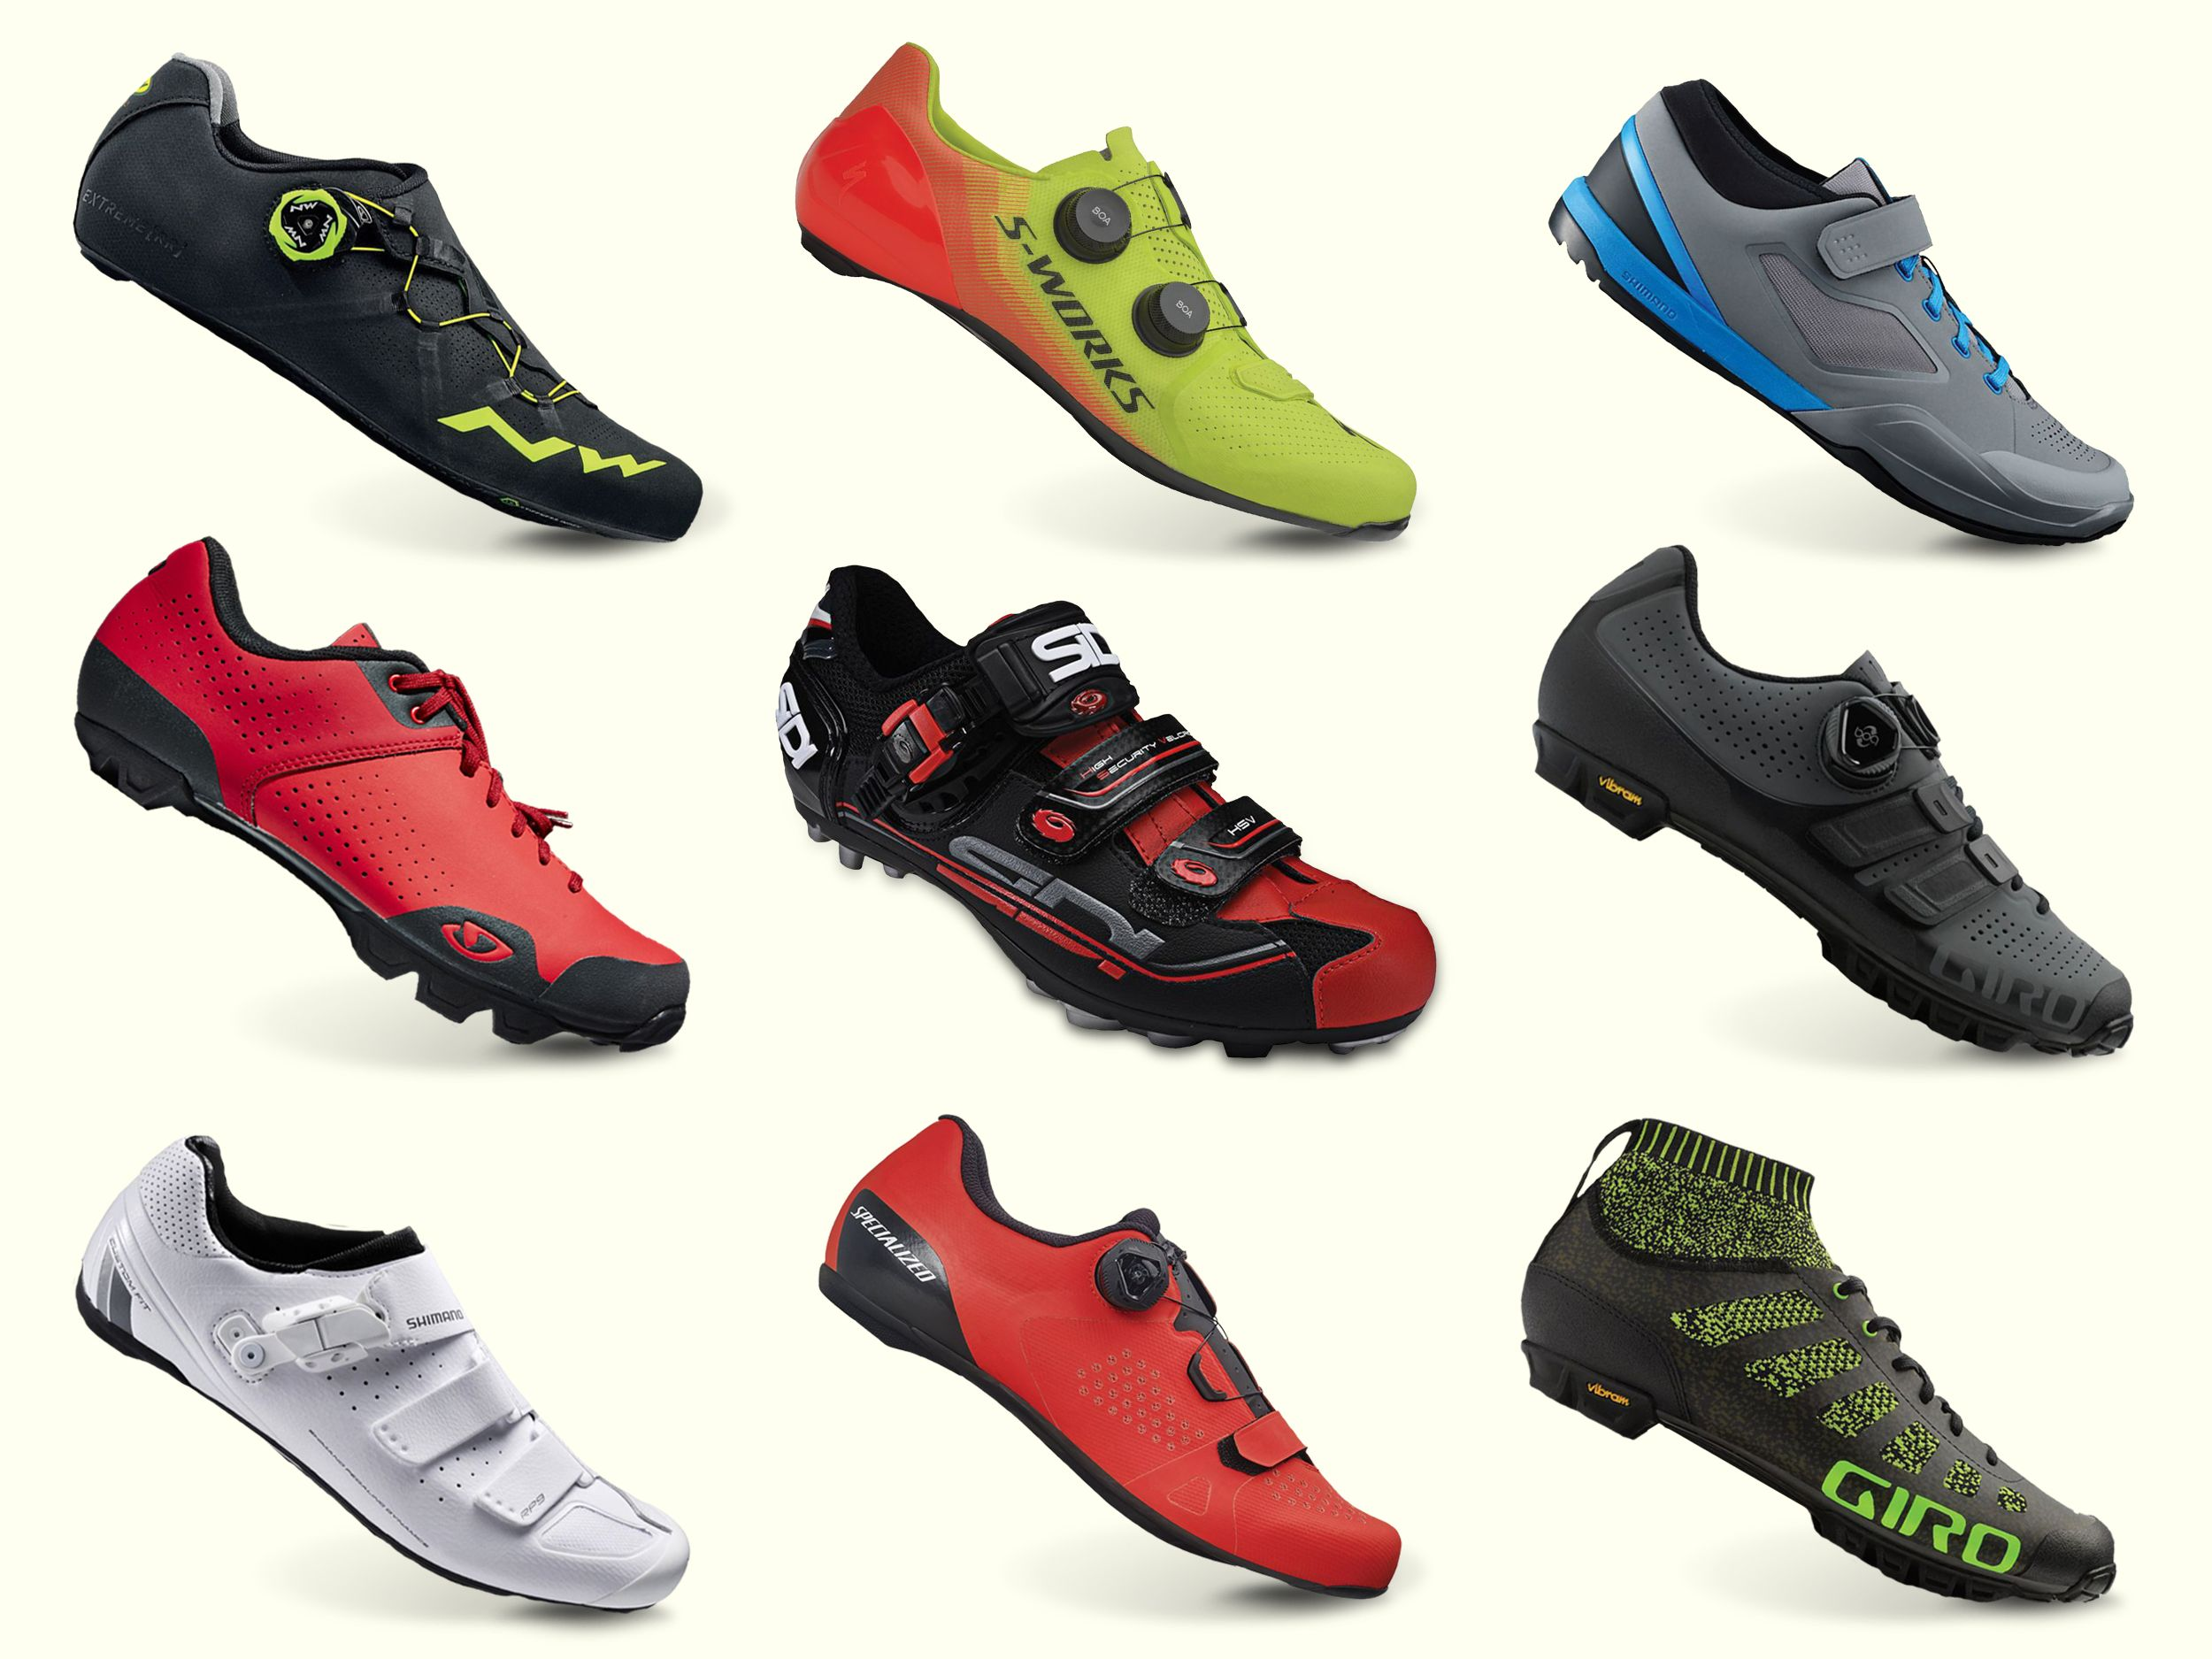 Cycling Shoes for Men - Best Road and Mountain Bike Shoes